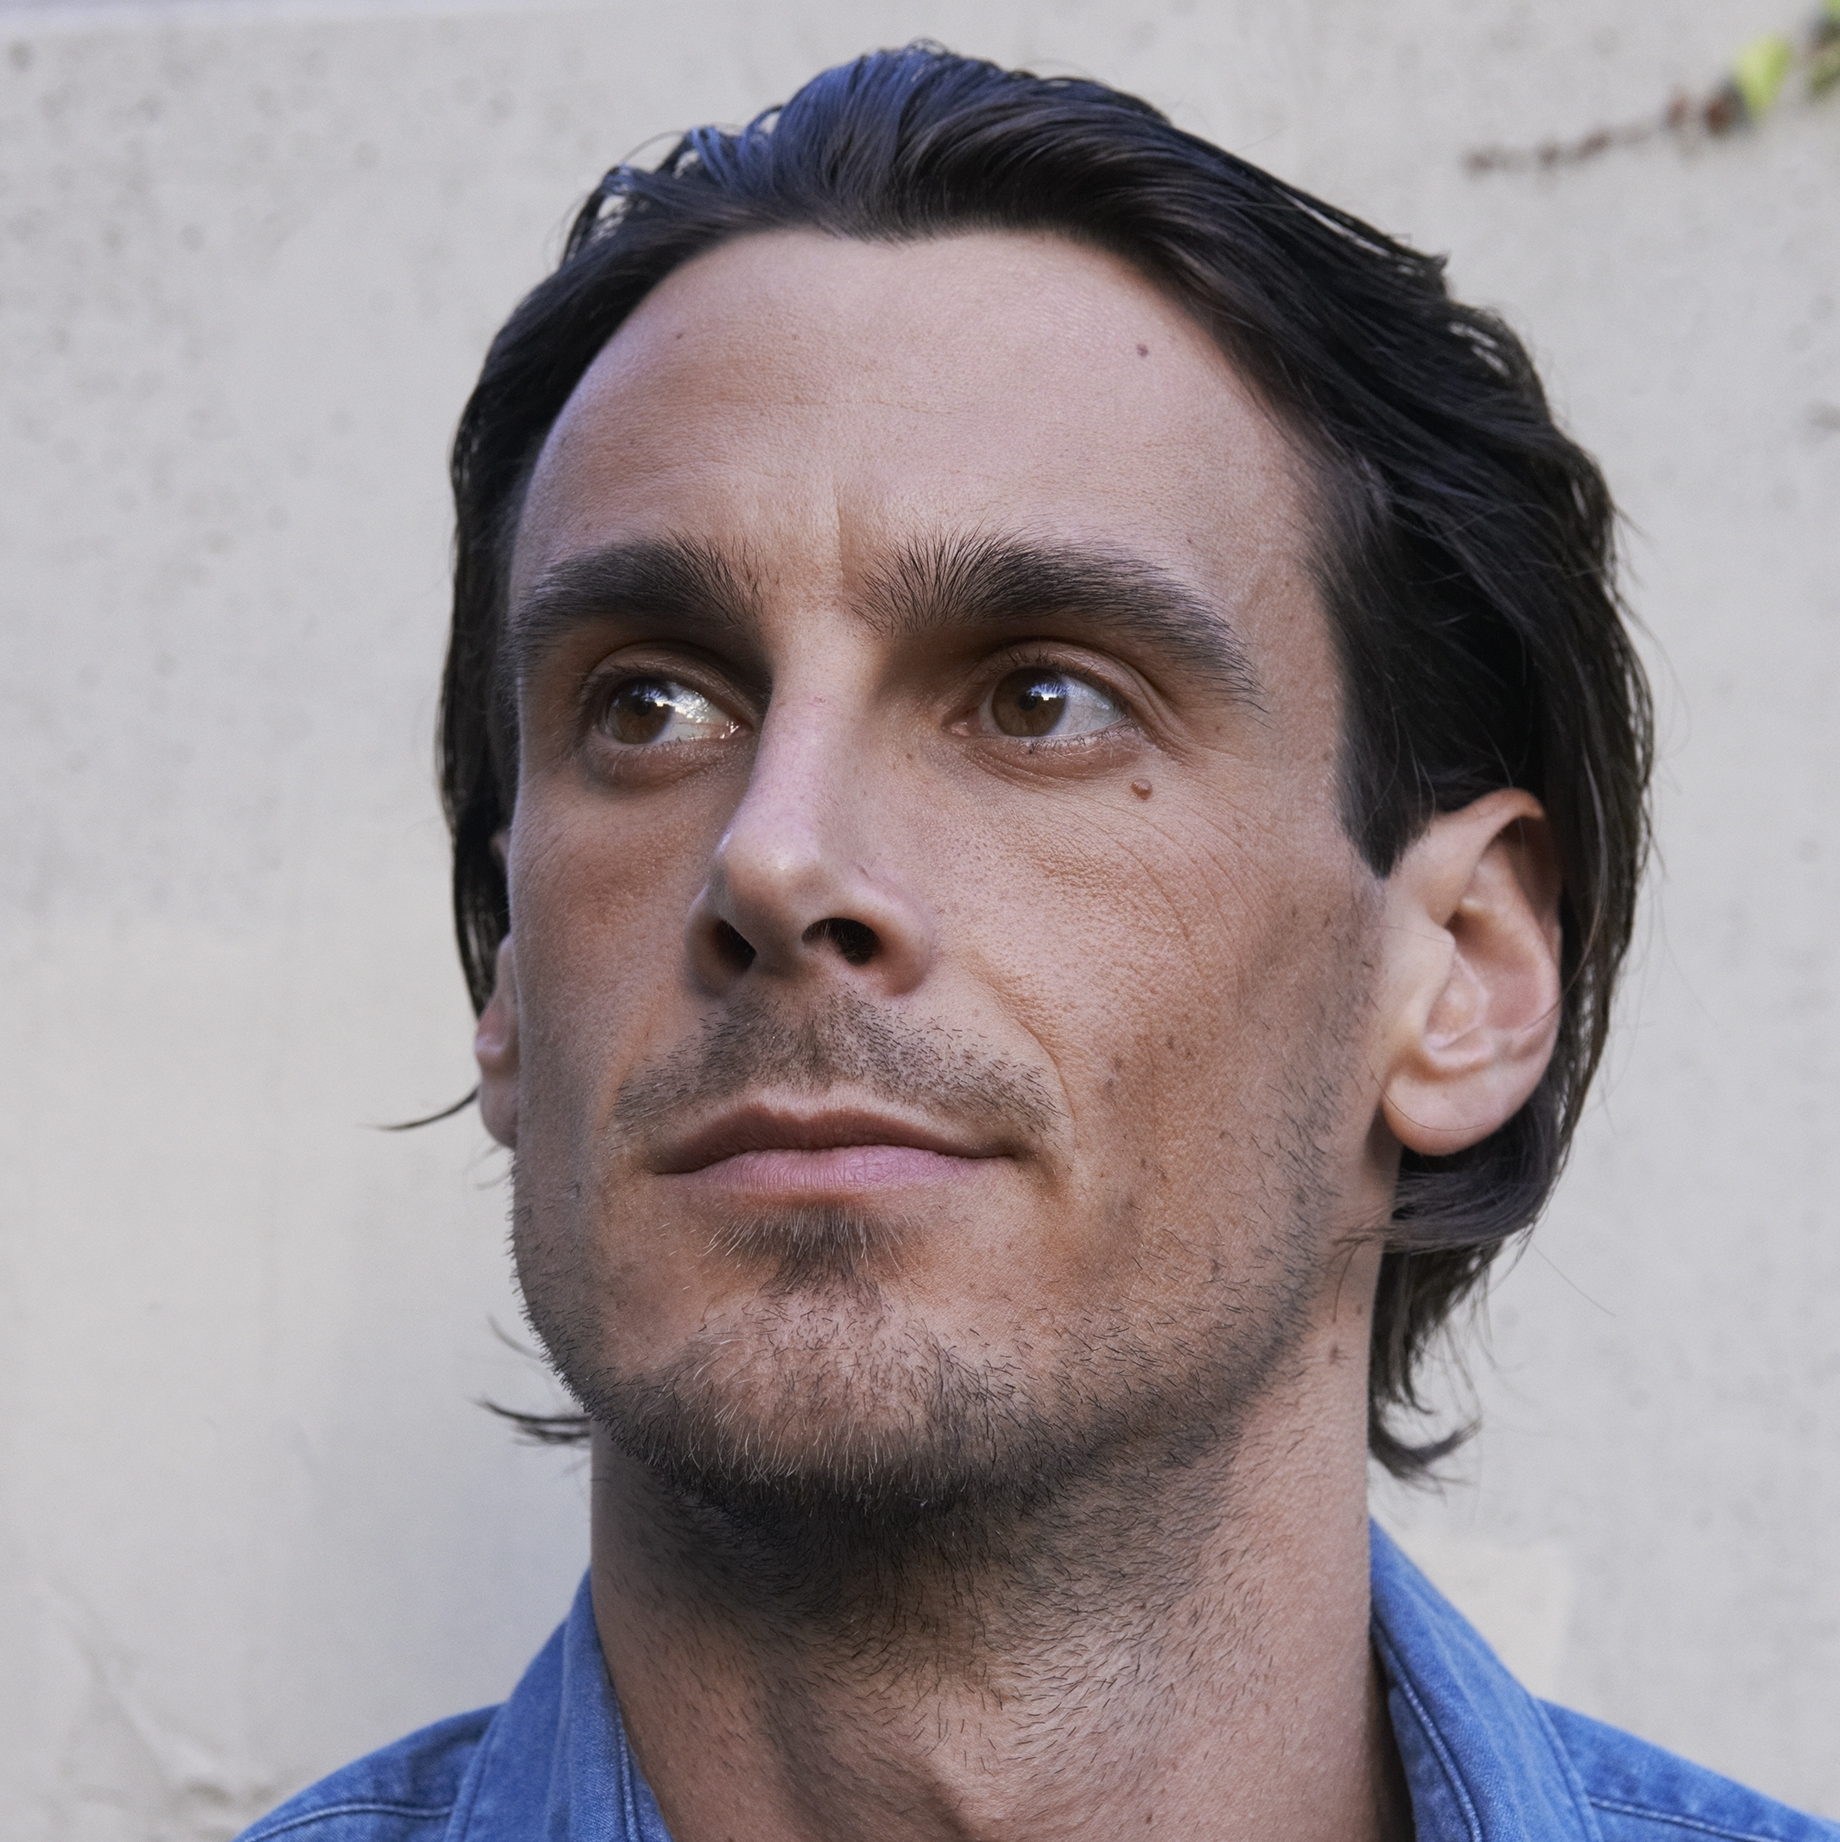 Chris Kluwe is a punter for the Oakland Raiders. Beautifully Unique Sparkleponies is his first book.